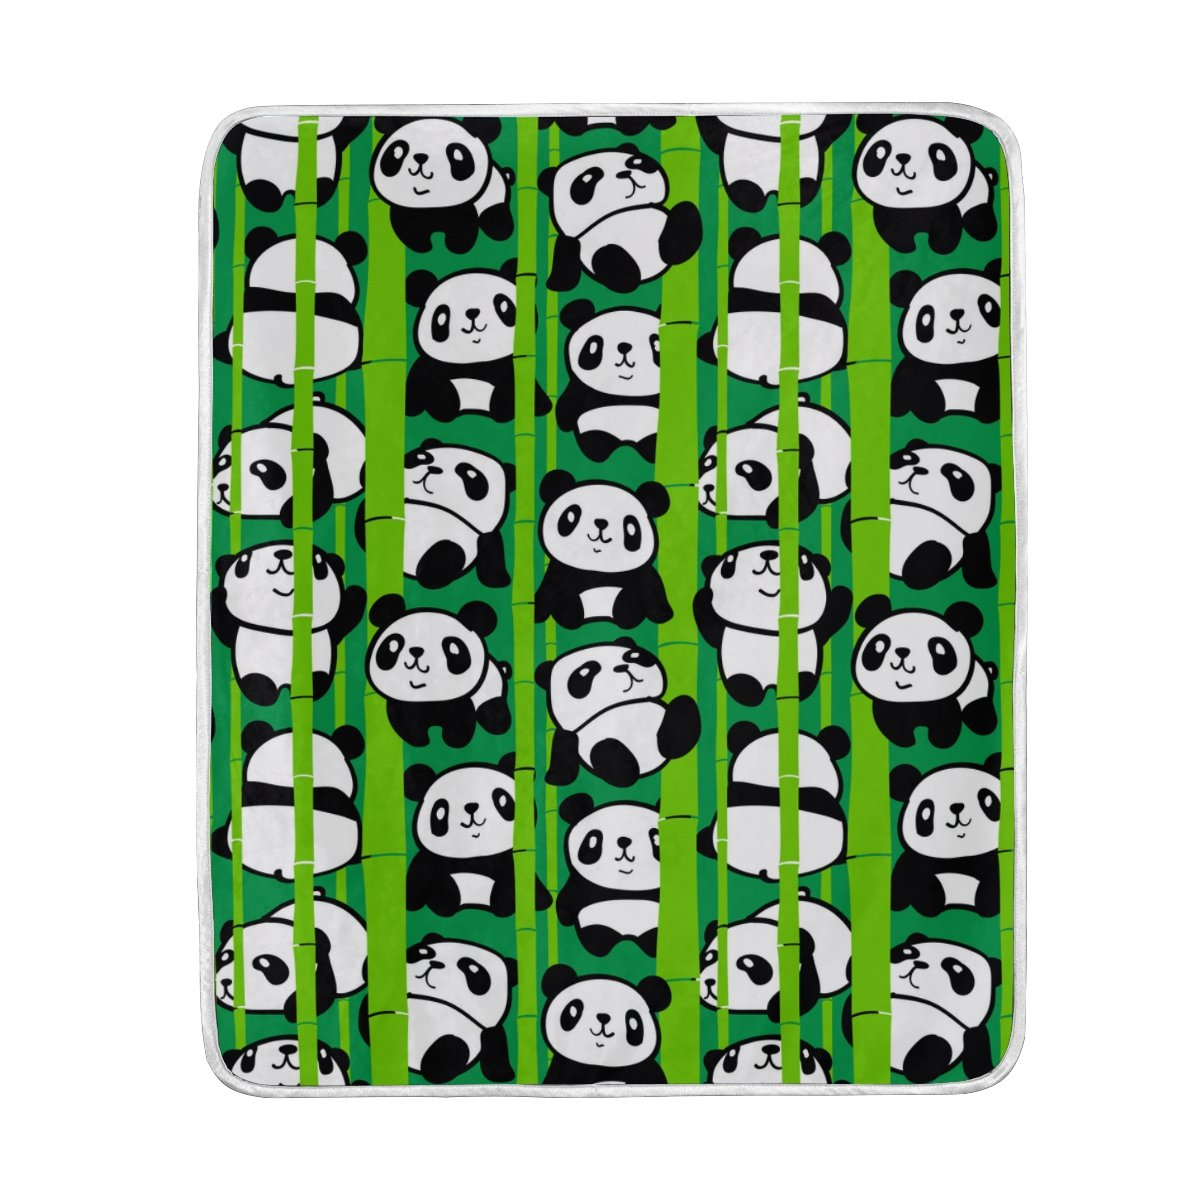 My Little Nest Warm Throw Blanket Pandas Bamboo Forest Lightweight Microfiber Soft Blanket Everyday Use for Bed Couch Sofa 50'' x 60''